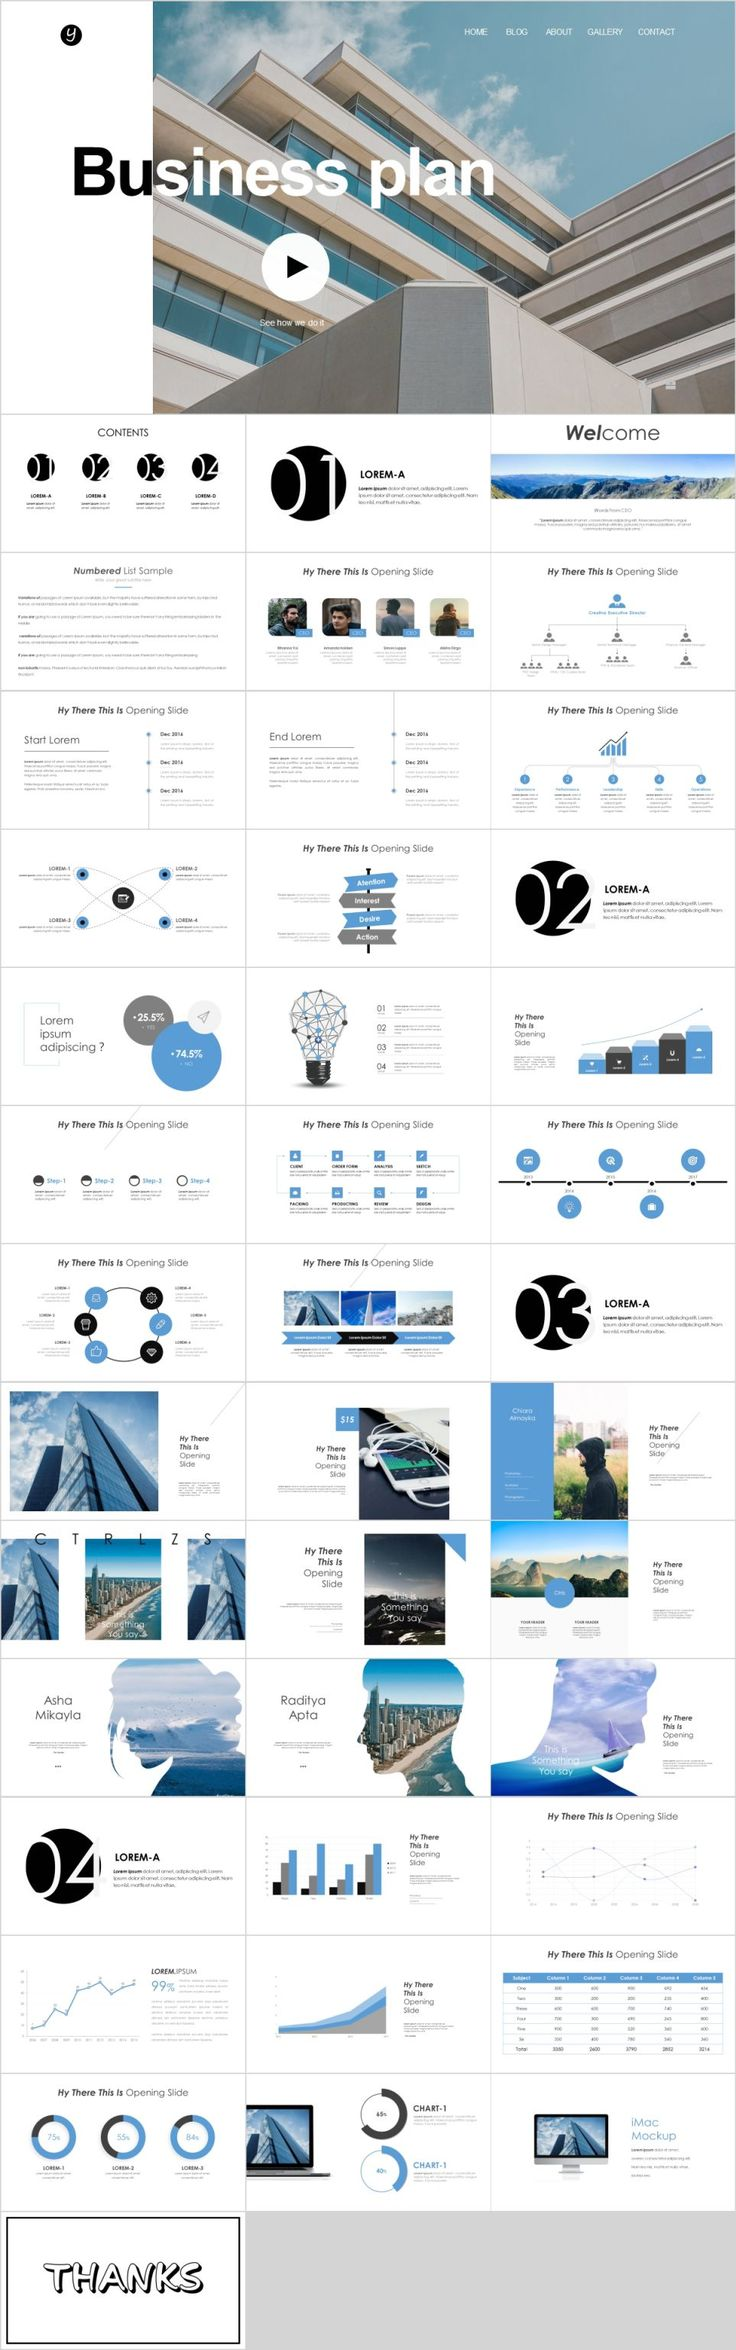 Blue business plan Slides Business plan presentation